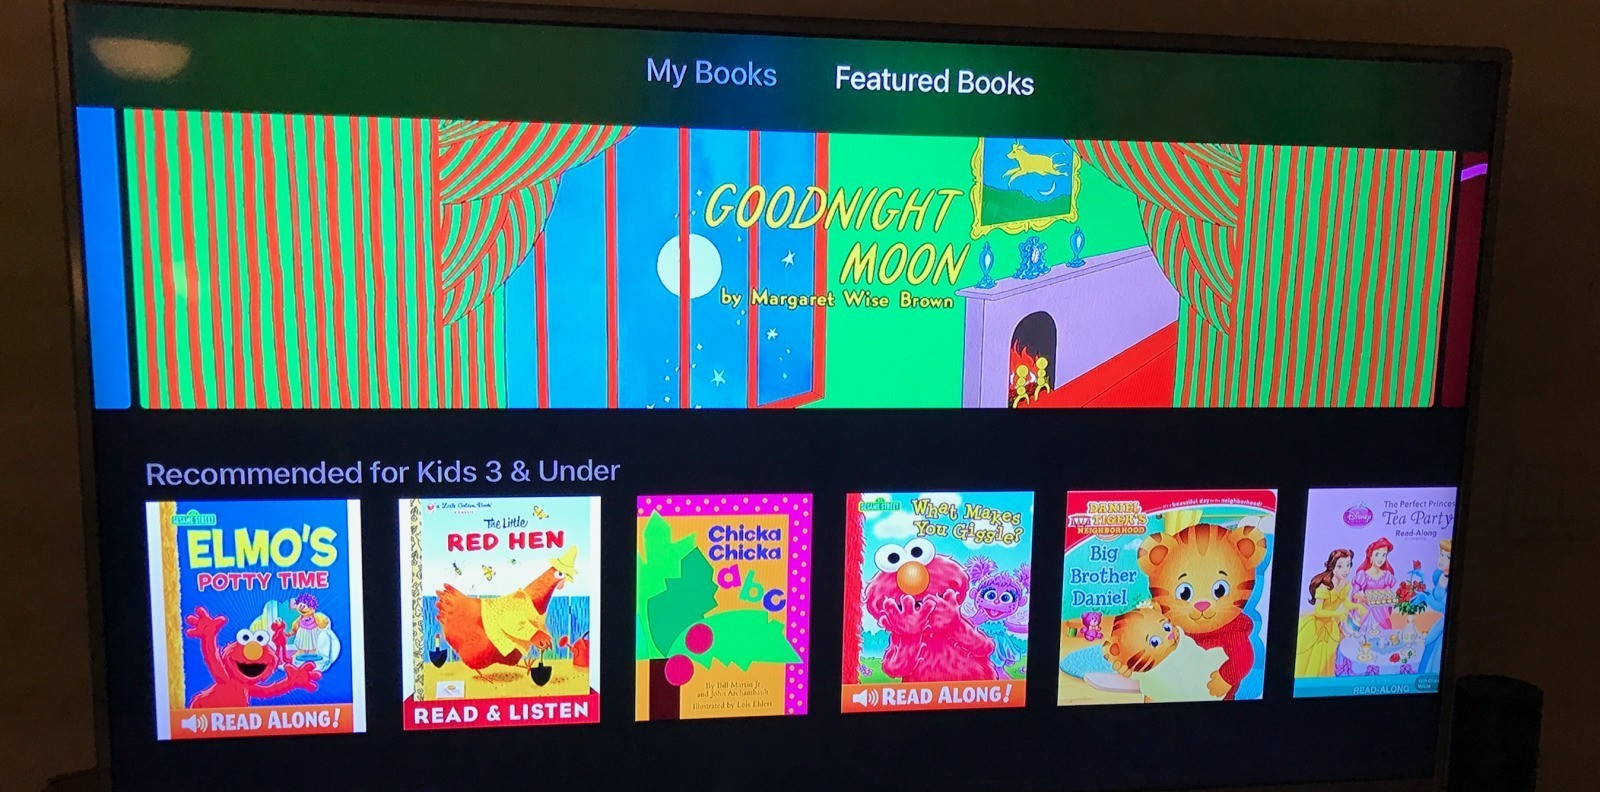 Apple quietly releases new iBooks StoryTime app for fourth-gen Apple TV users